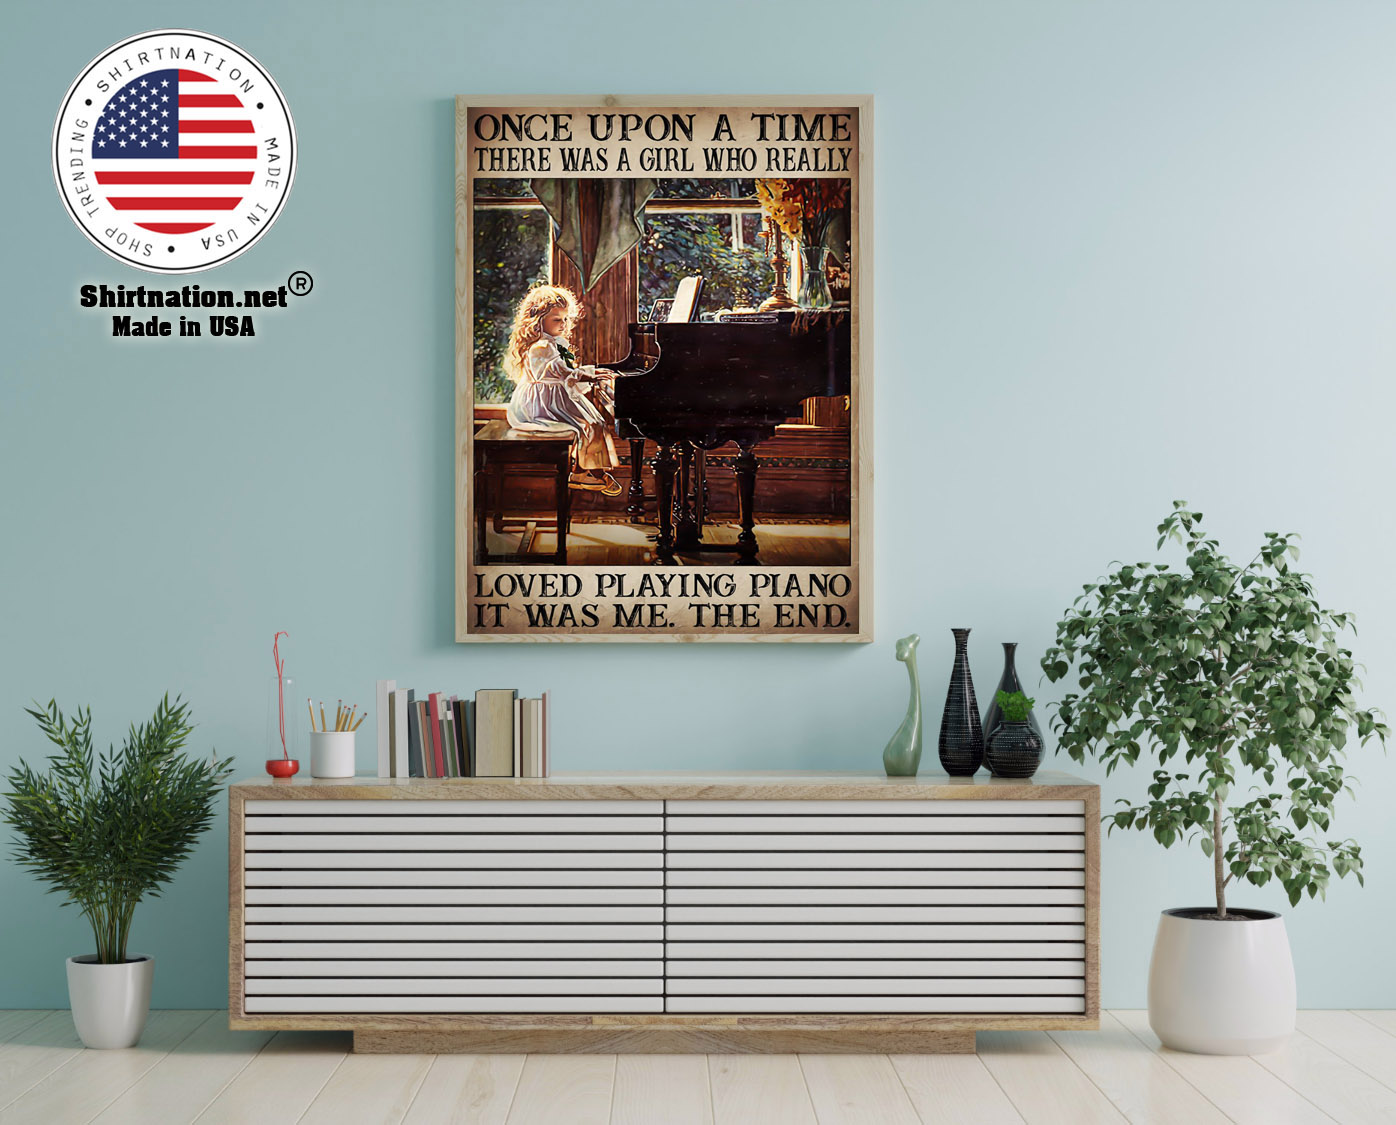 Once upon a time there was a girl who really loved playing piano poster 12